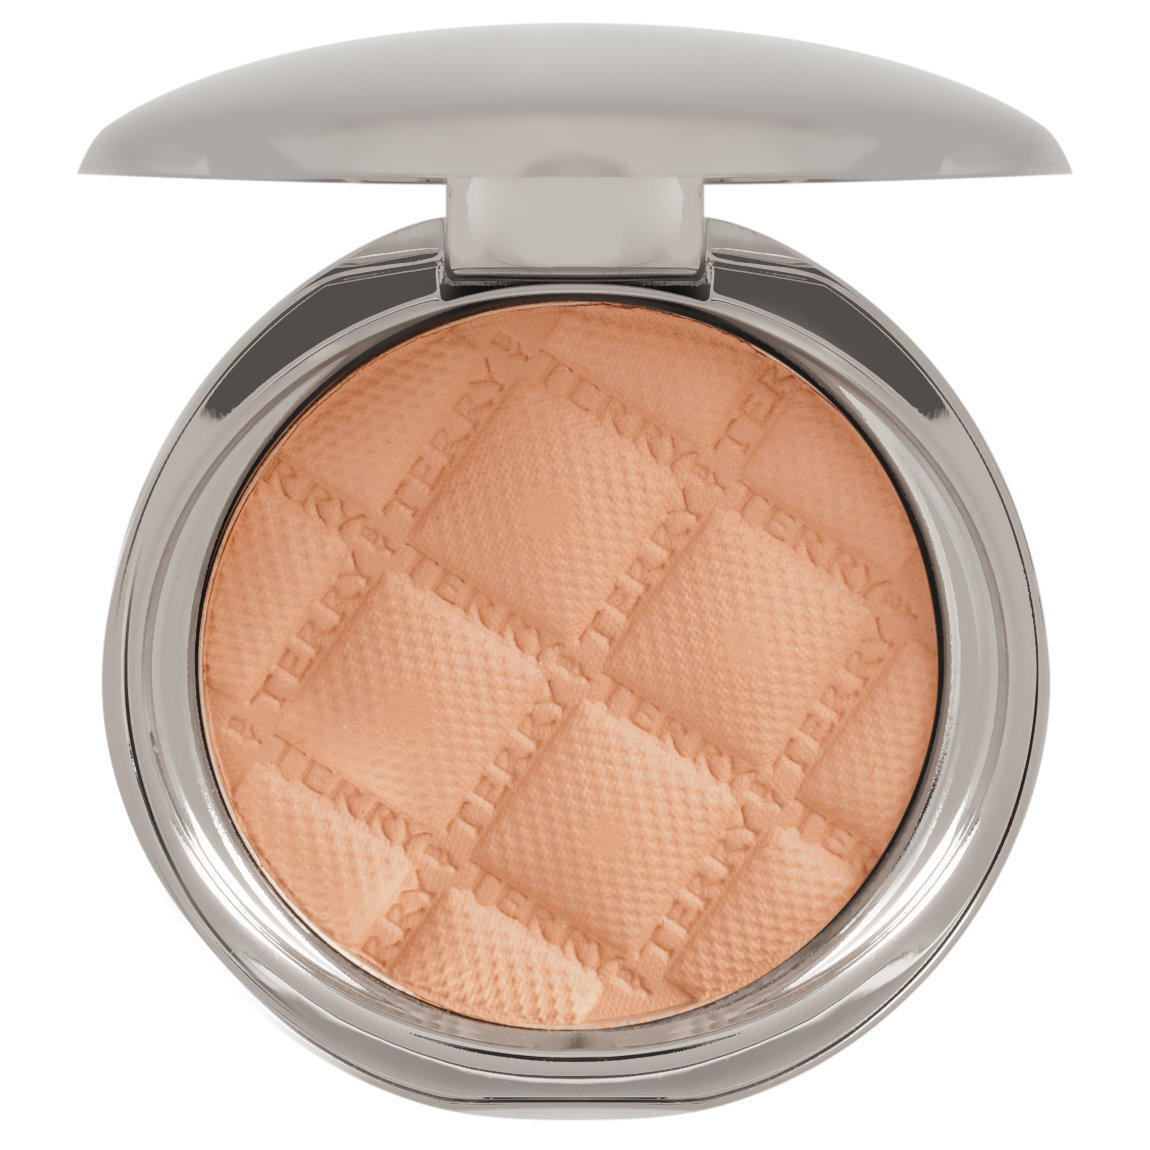 BY TERRY Terrybly Densiliss Compact Deep Nude 4